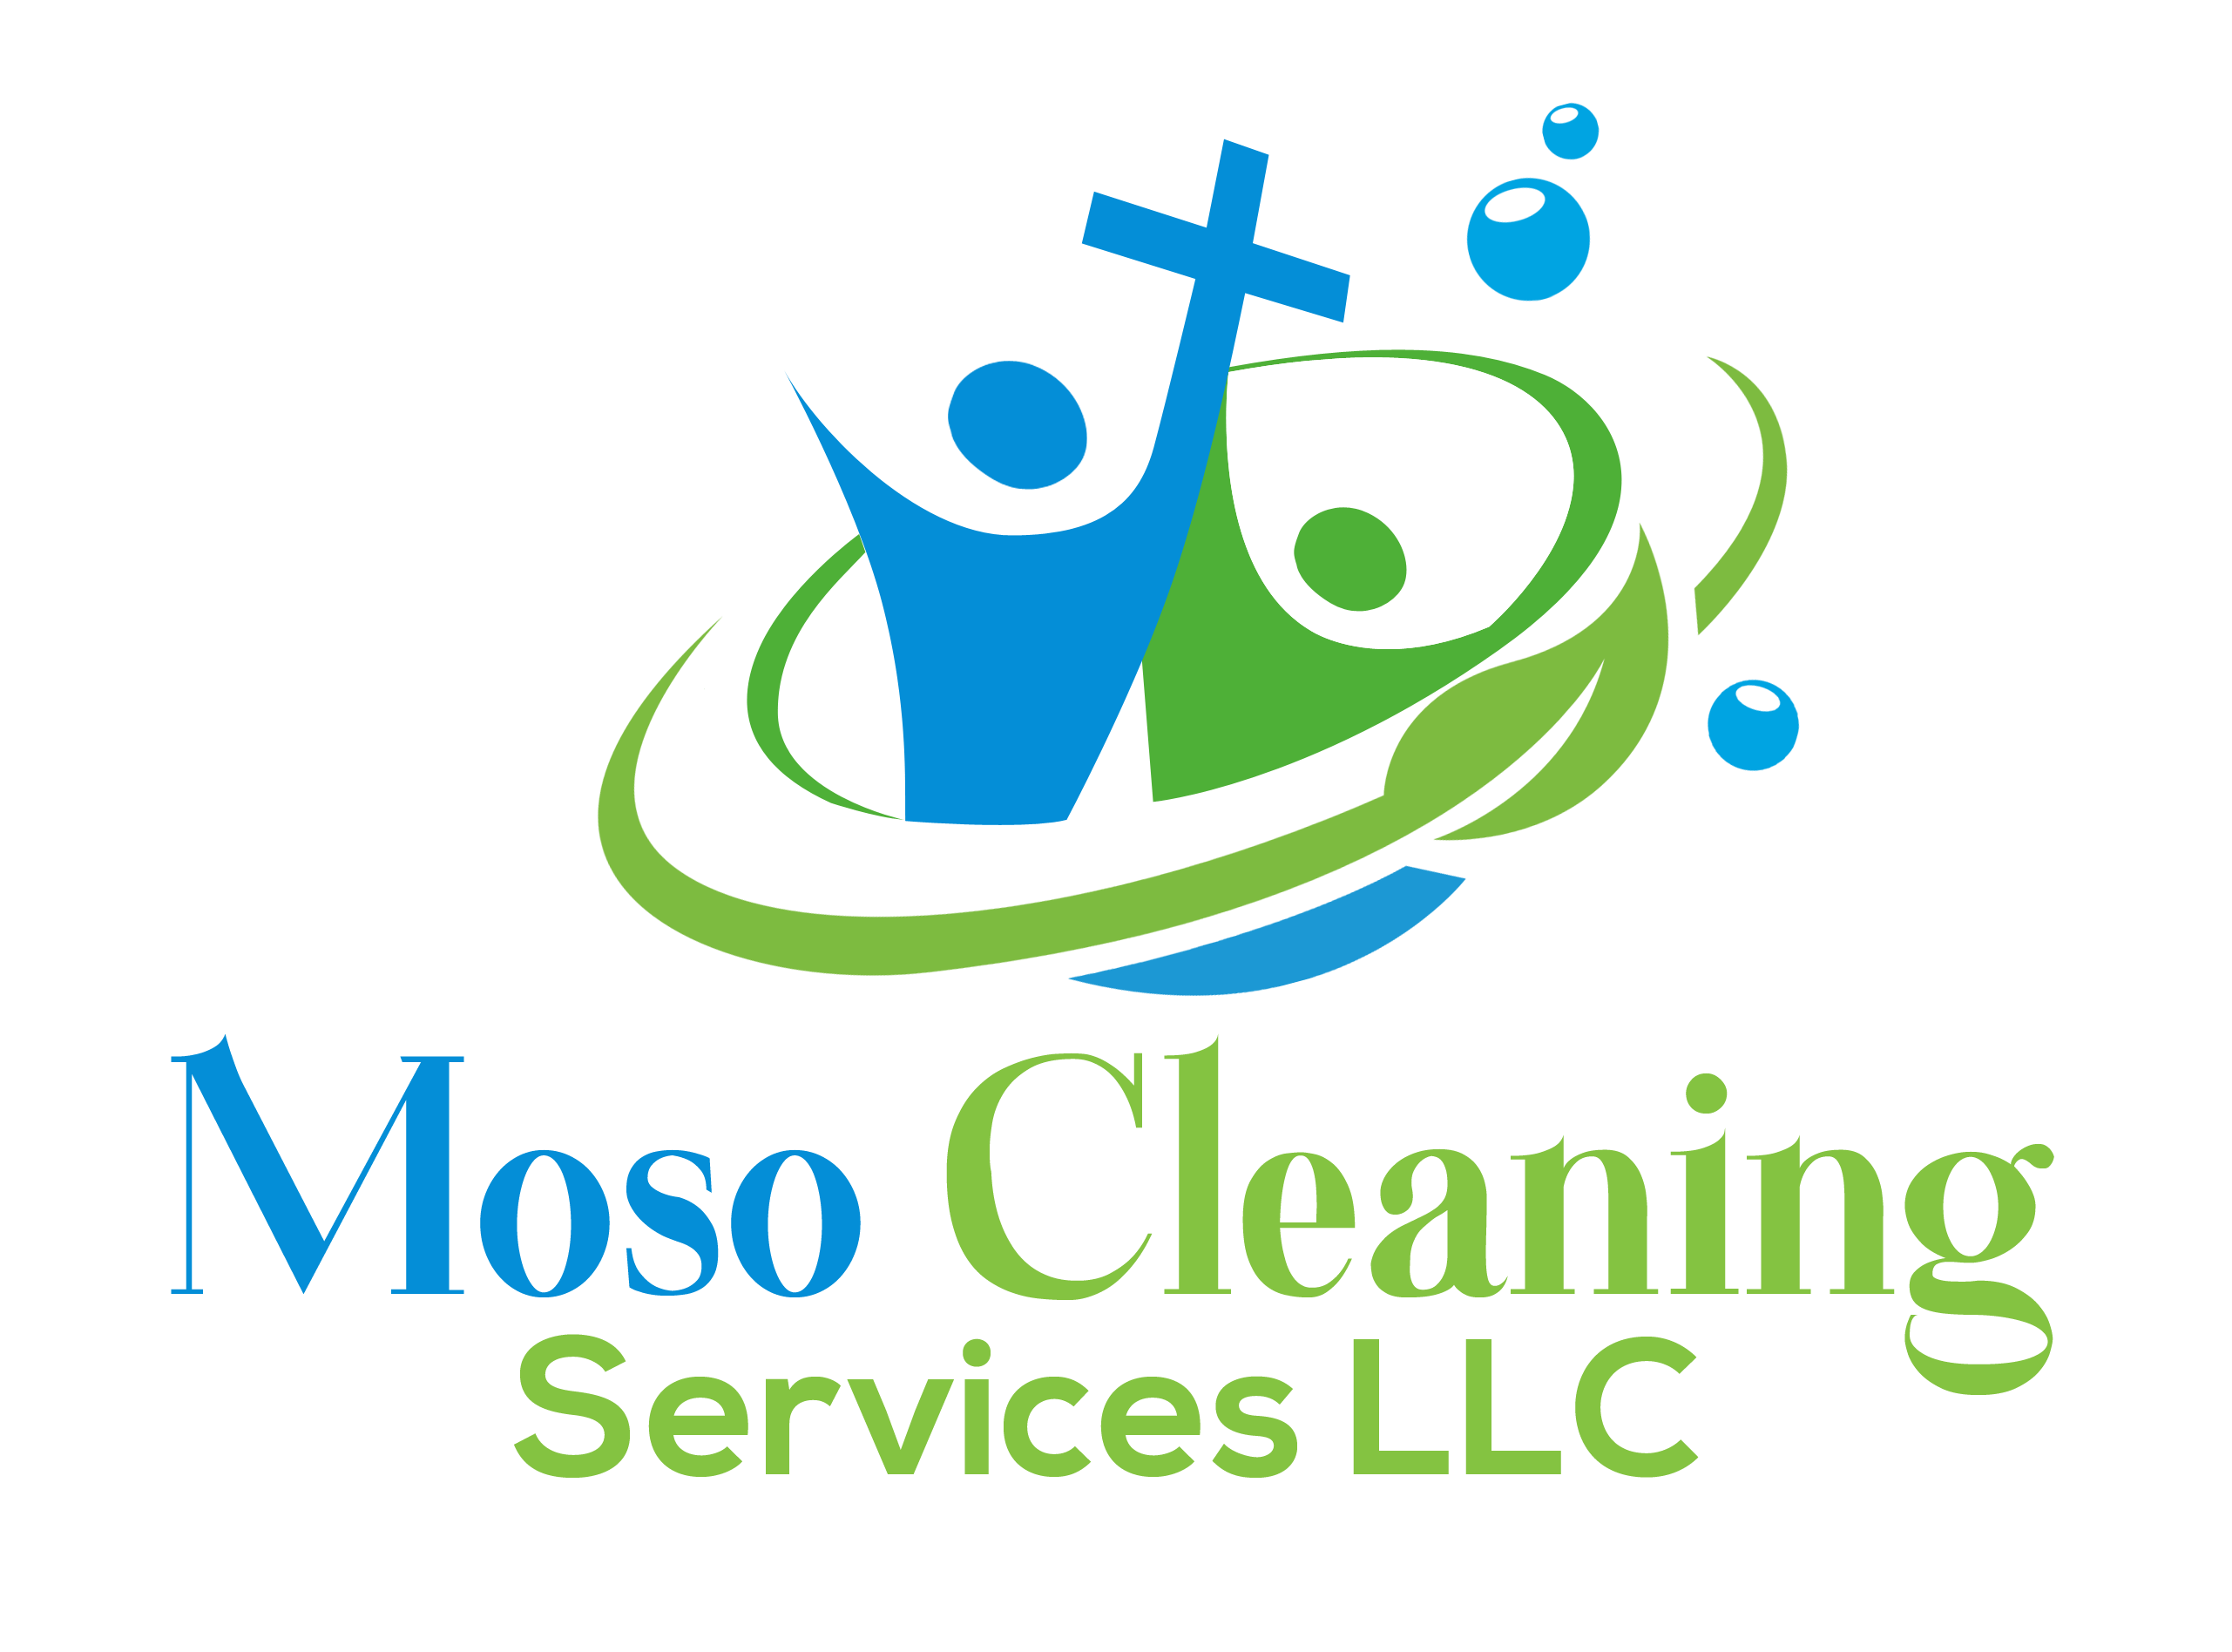 MOSO Cleaning Services